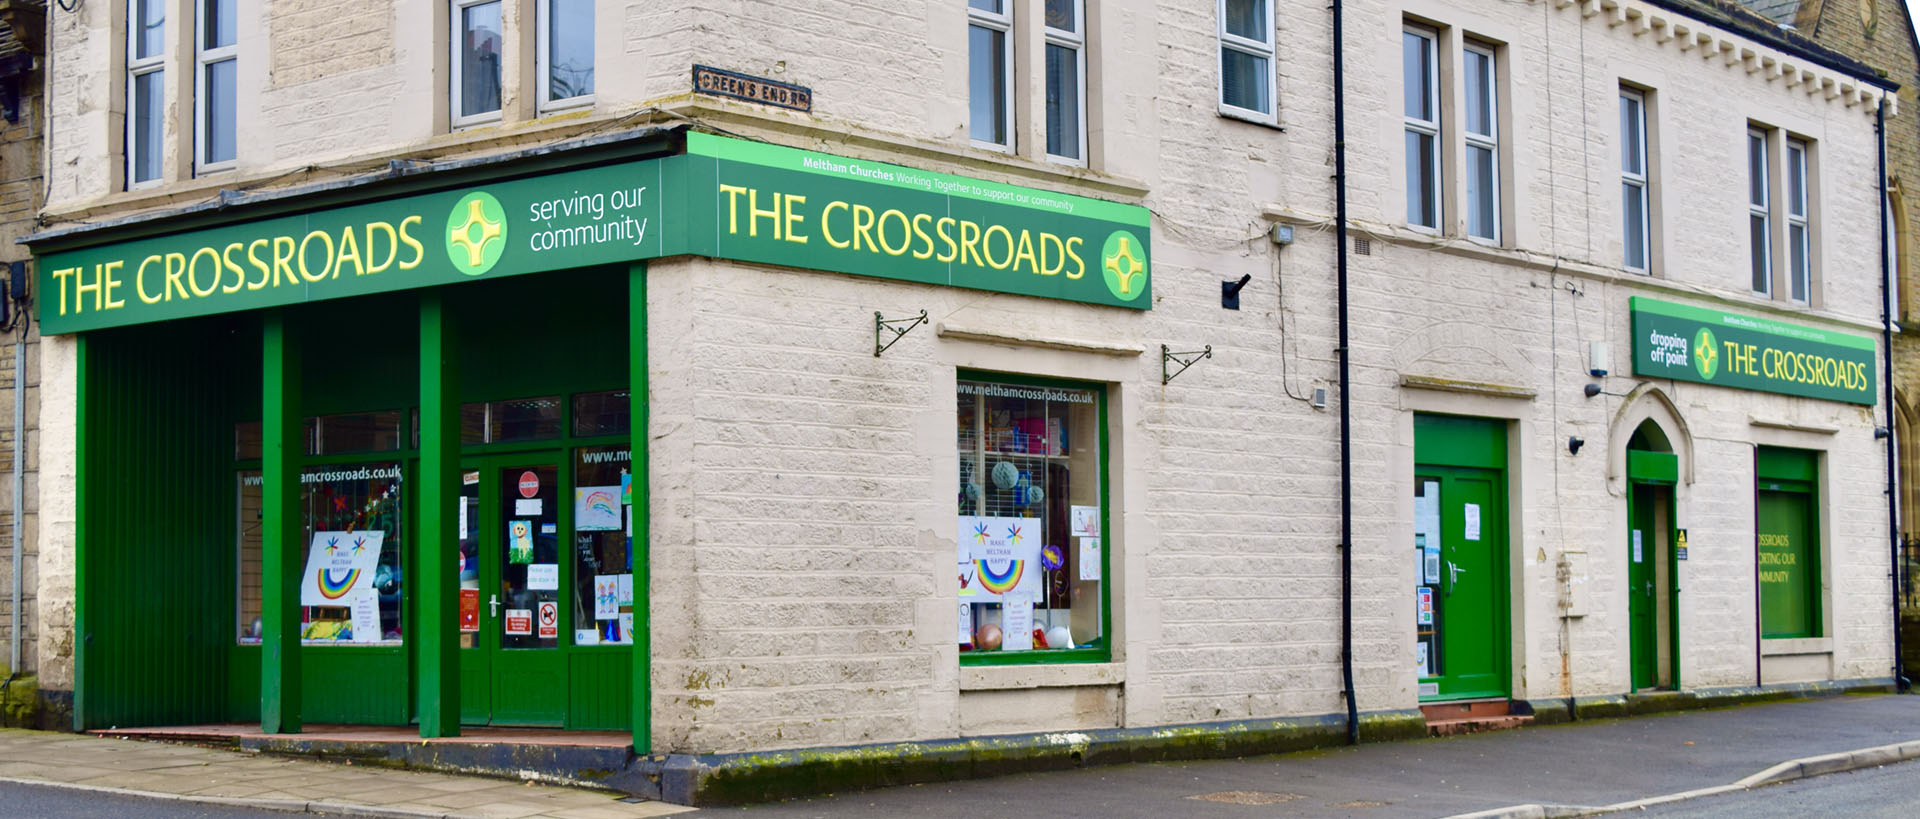 The Crossroads - Charity shop in Meltham